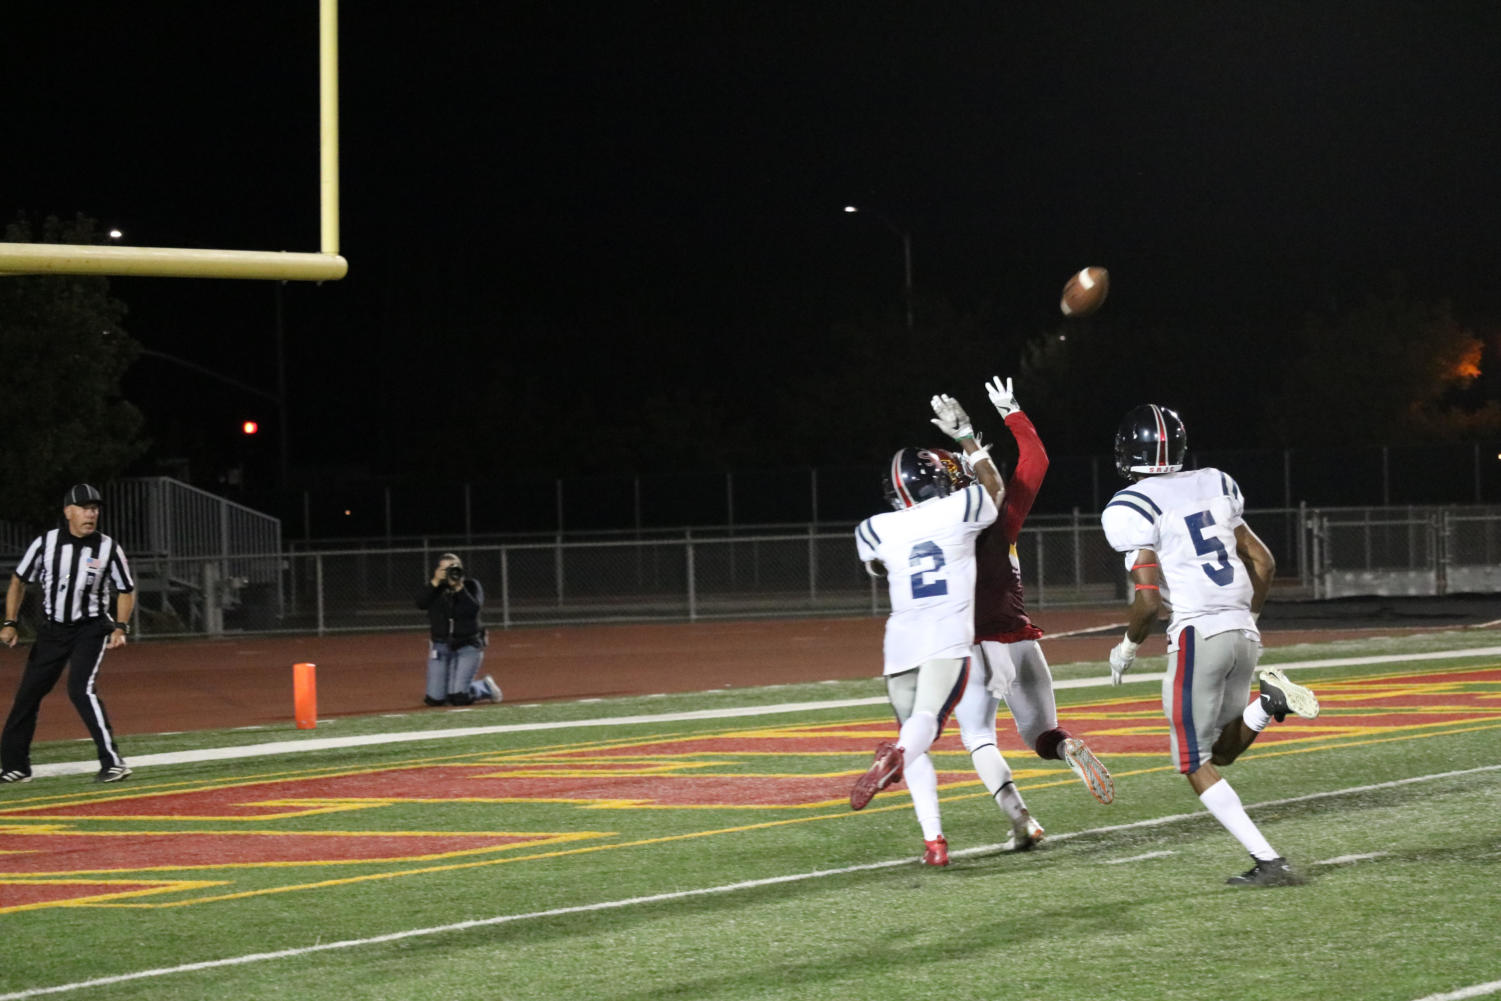 Santa Rosa Junior College defensive back makes a play on the ball.